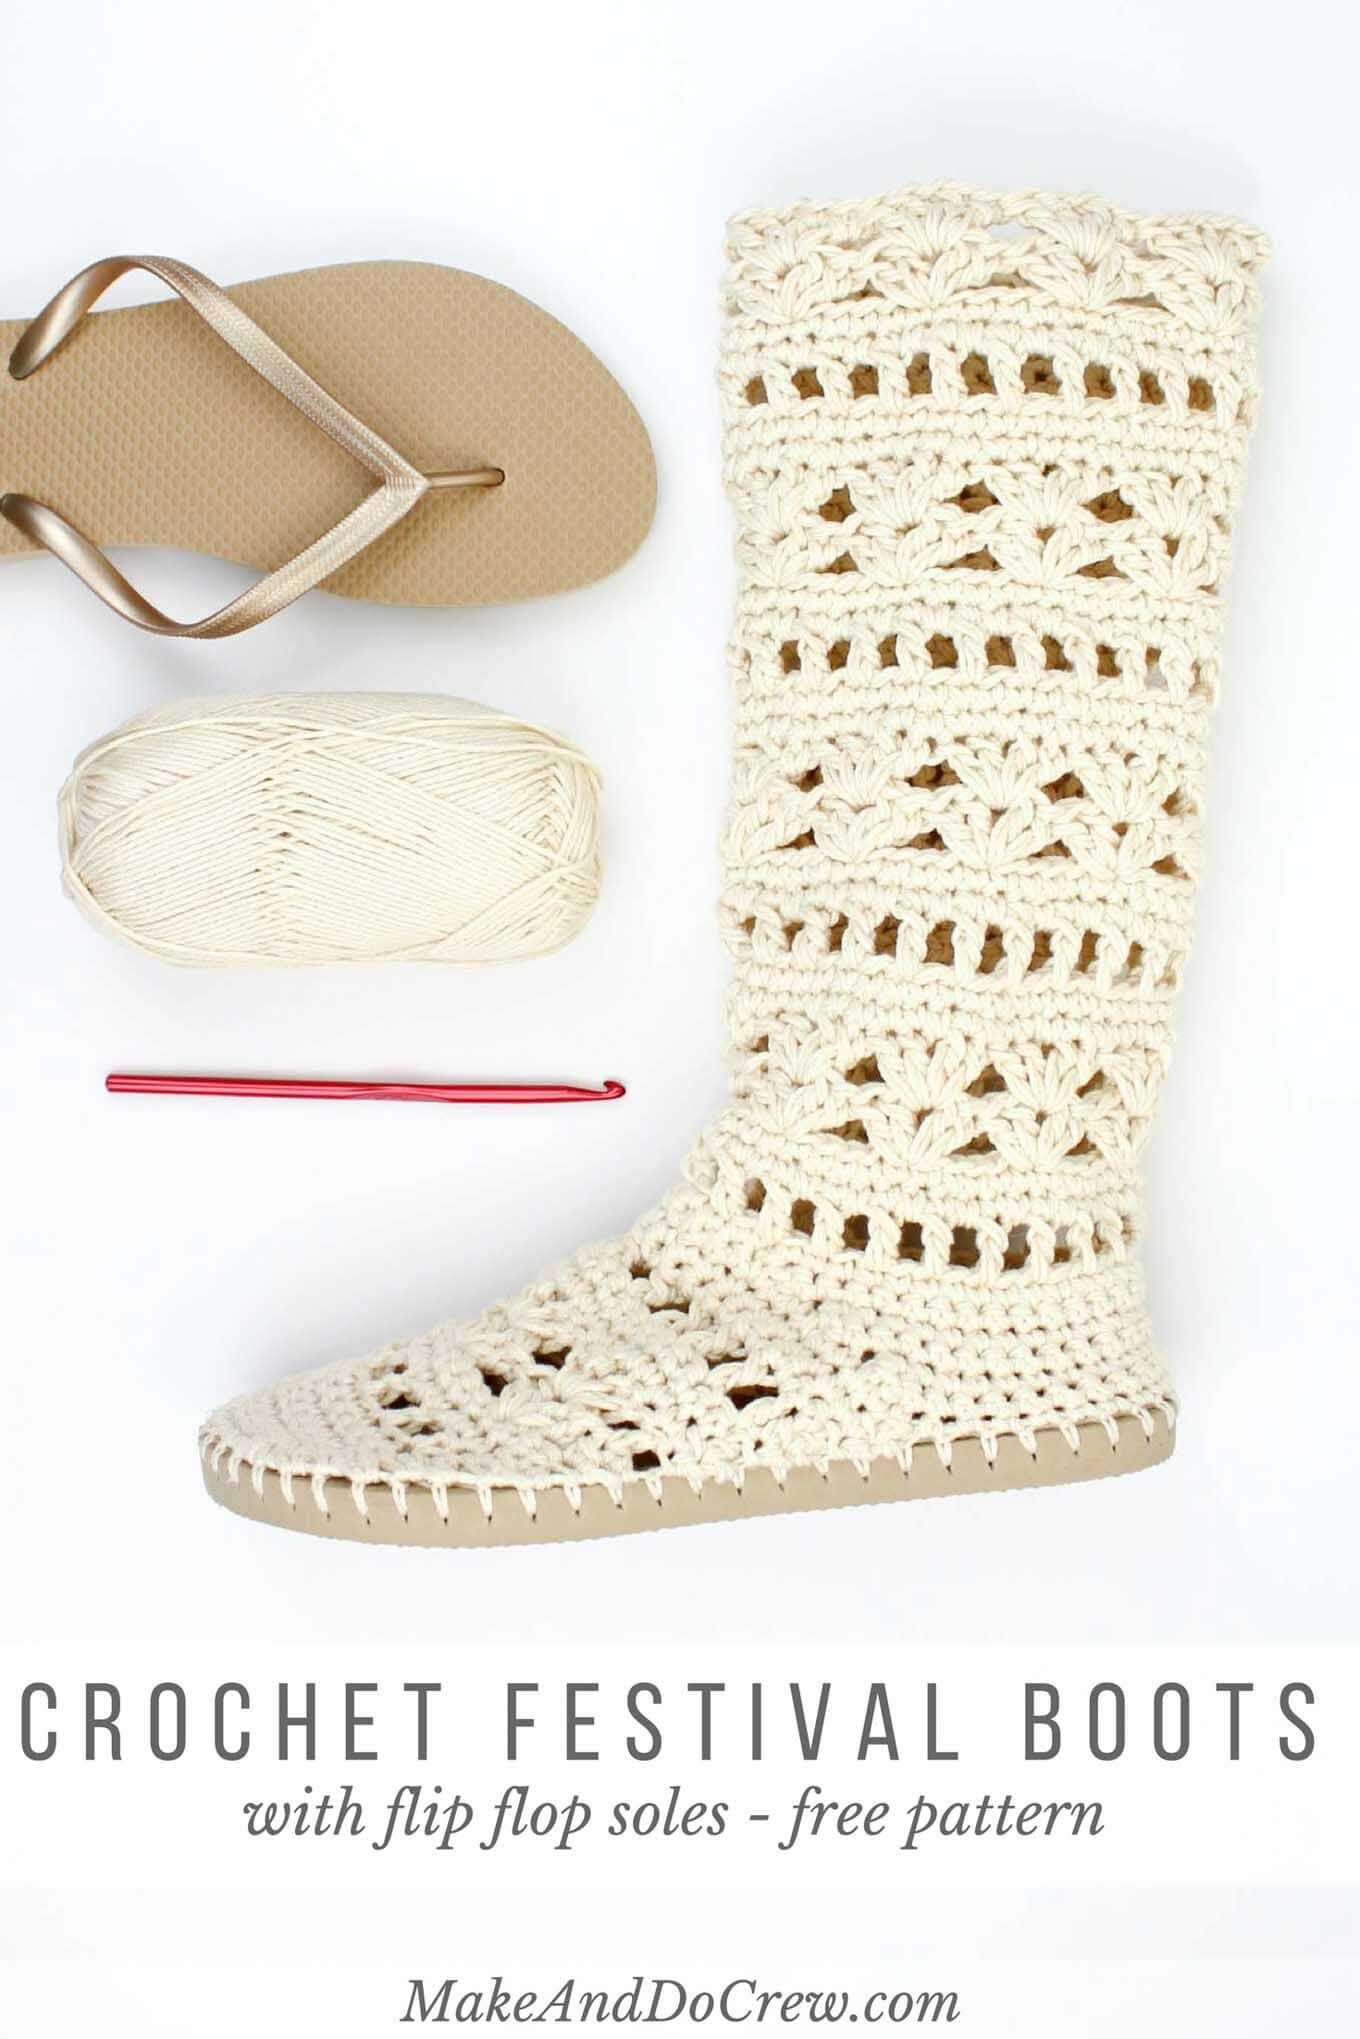 Lacy crochet boots pattern for adults made with flip flops lacy crochet boots pattern for adults made with flip flops bankloansurffo Image collections